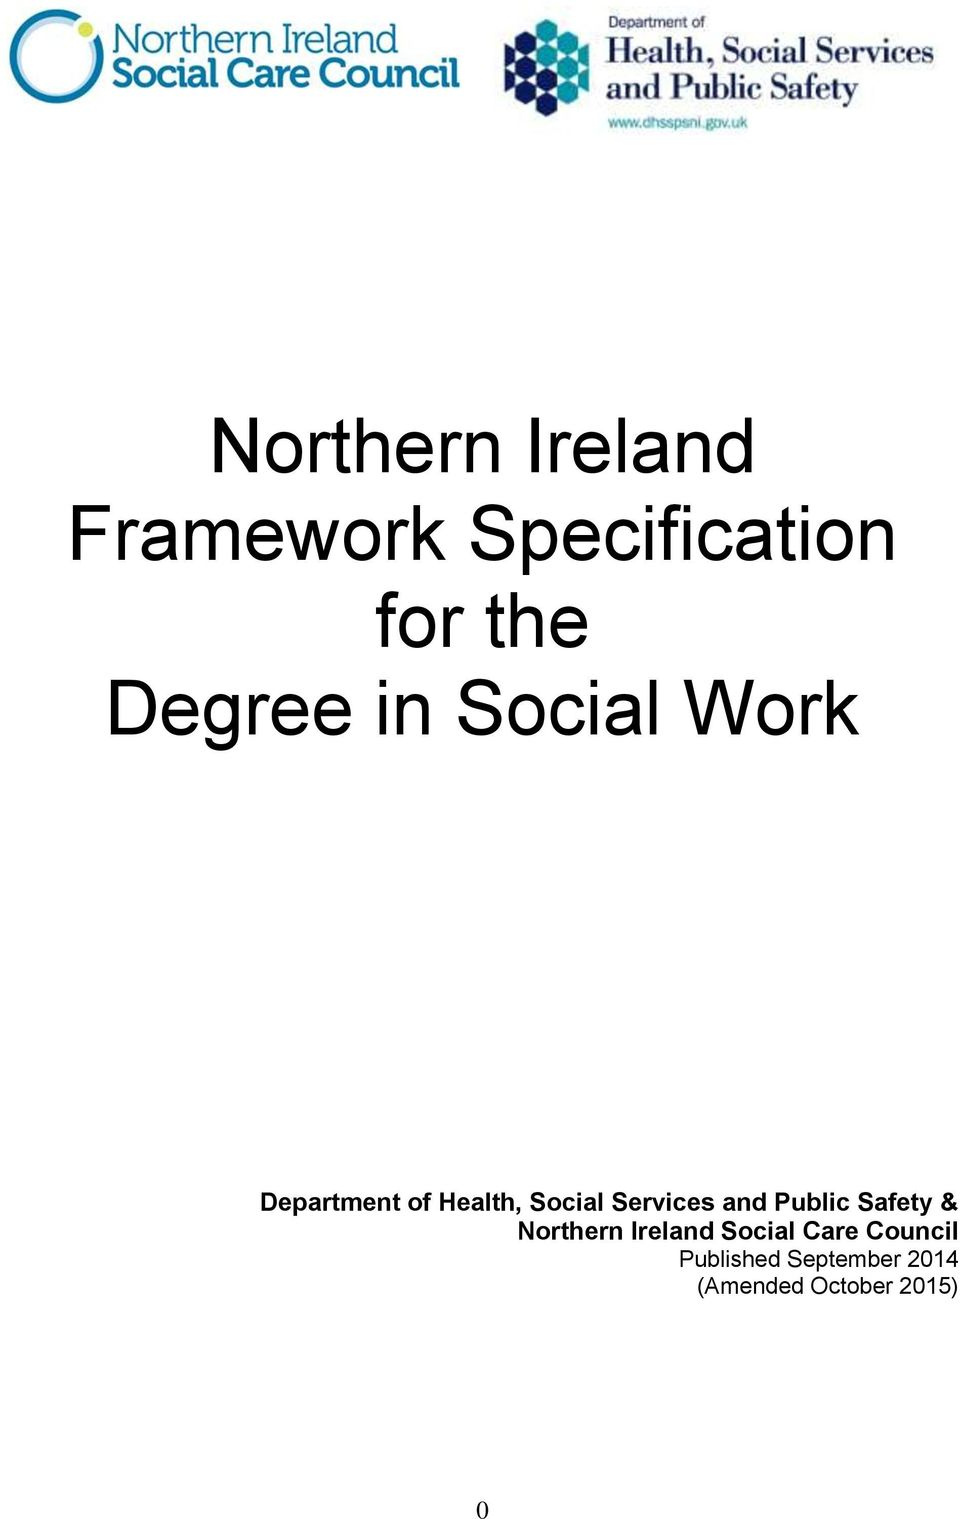 Services and Public Safety & Northern Ireland Social